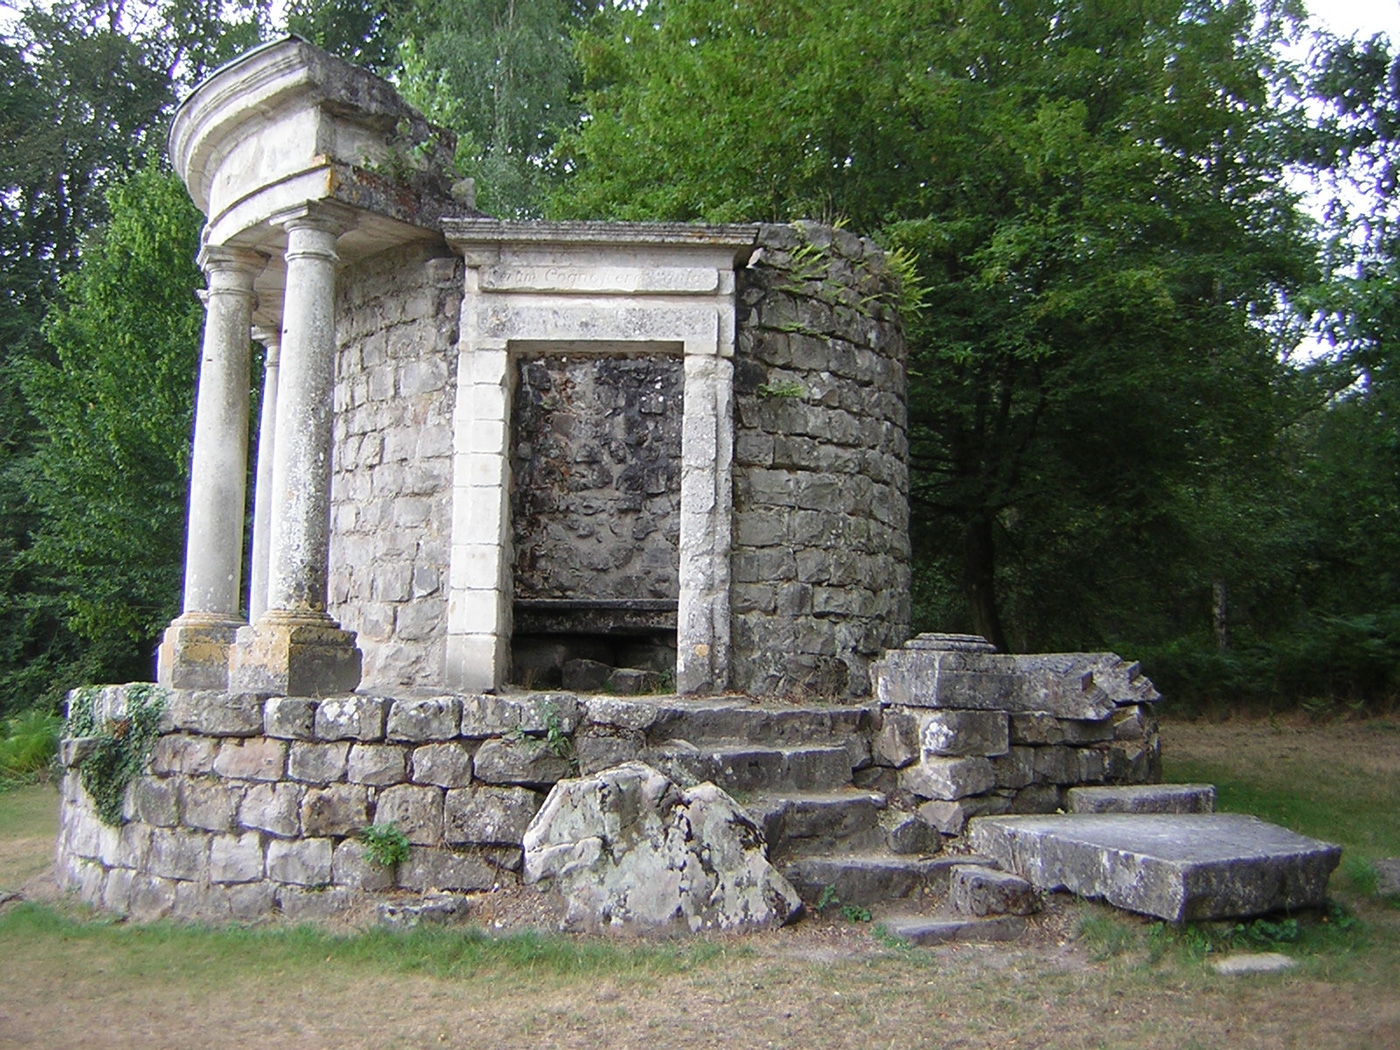 The Temple of Philosophy at Ermenonville. (Image via Wikimedia Commons)